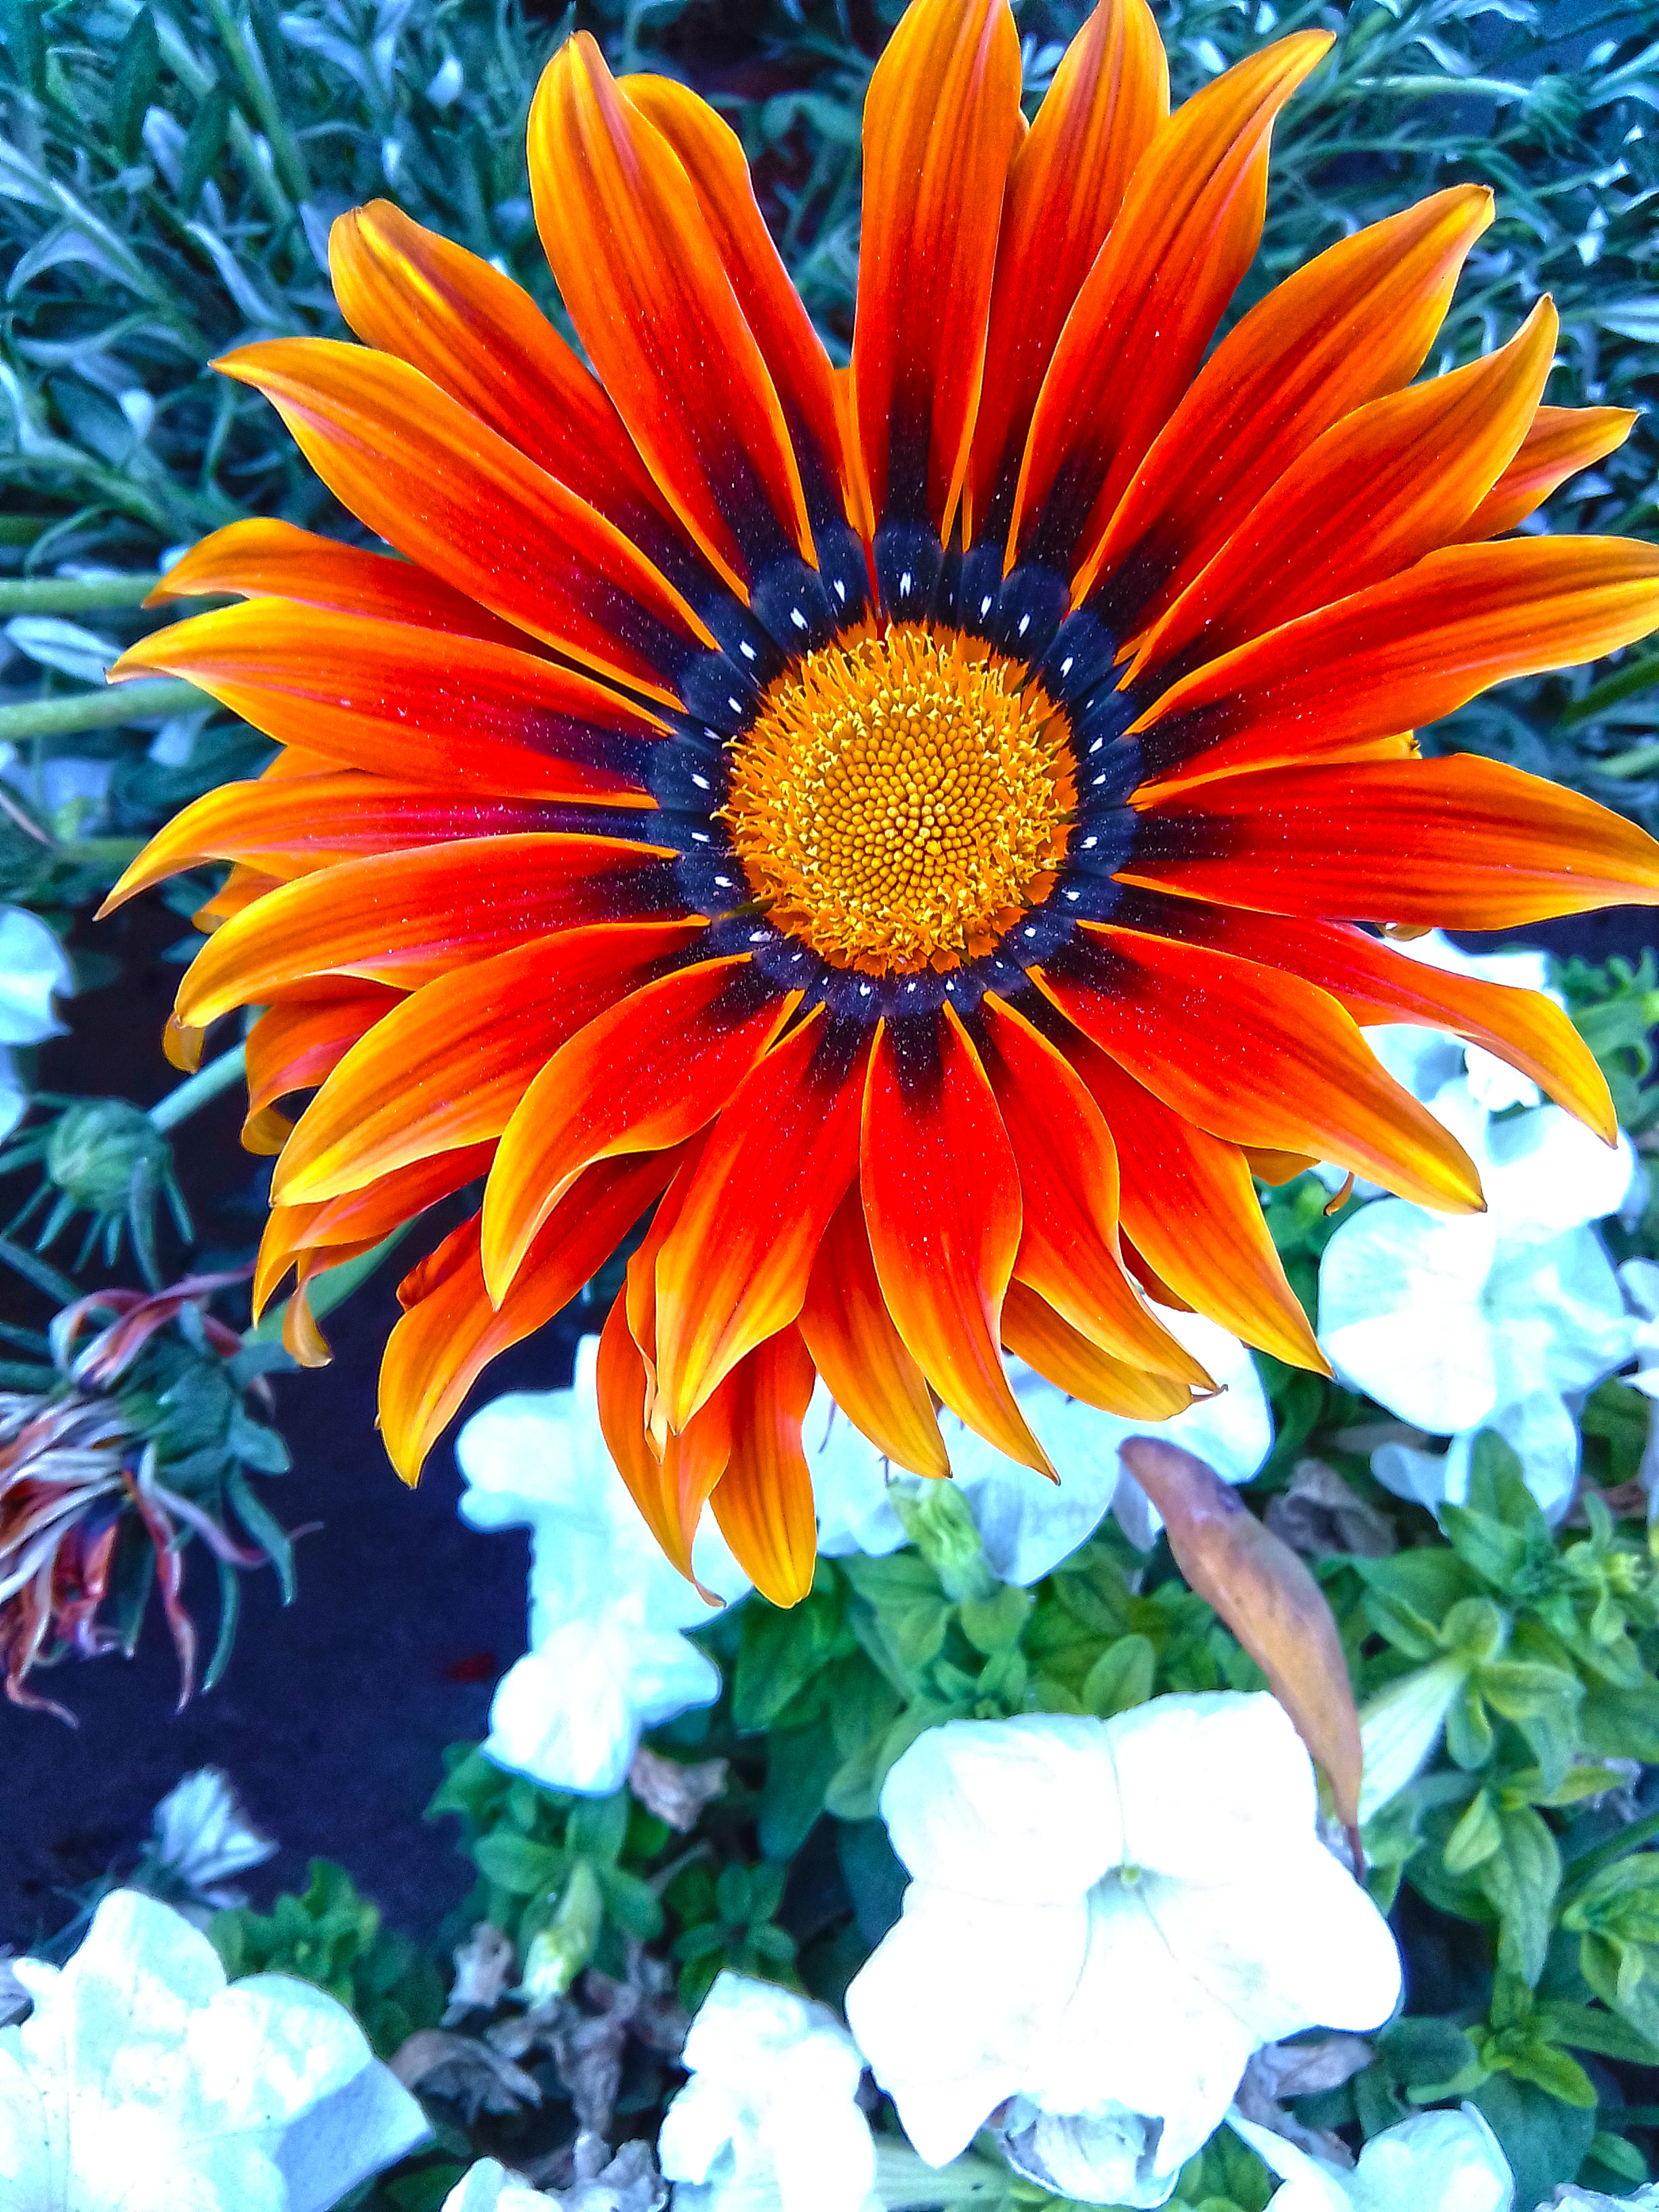 This is African Daisy Flower